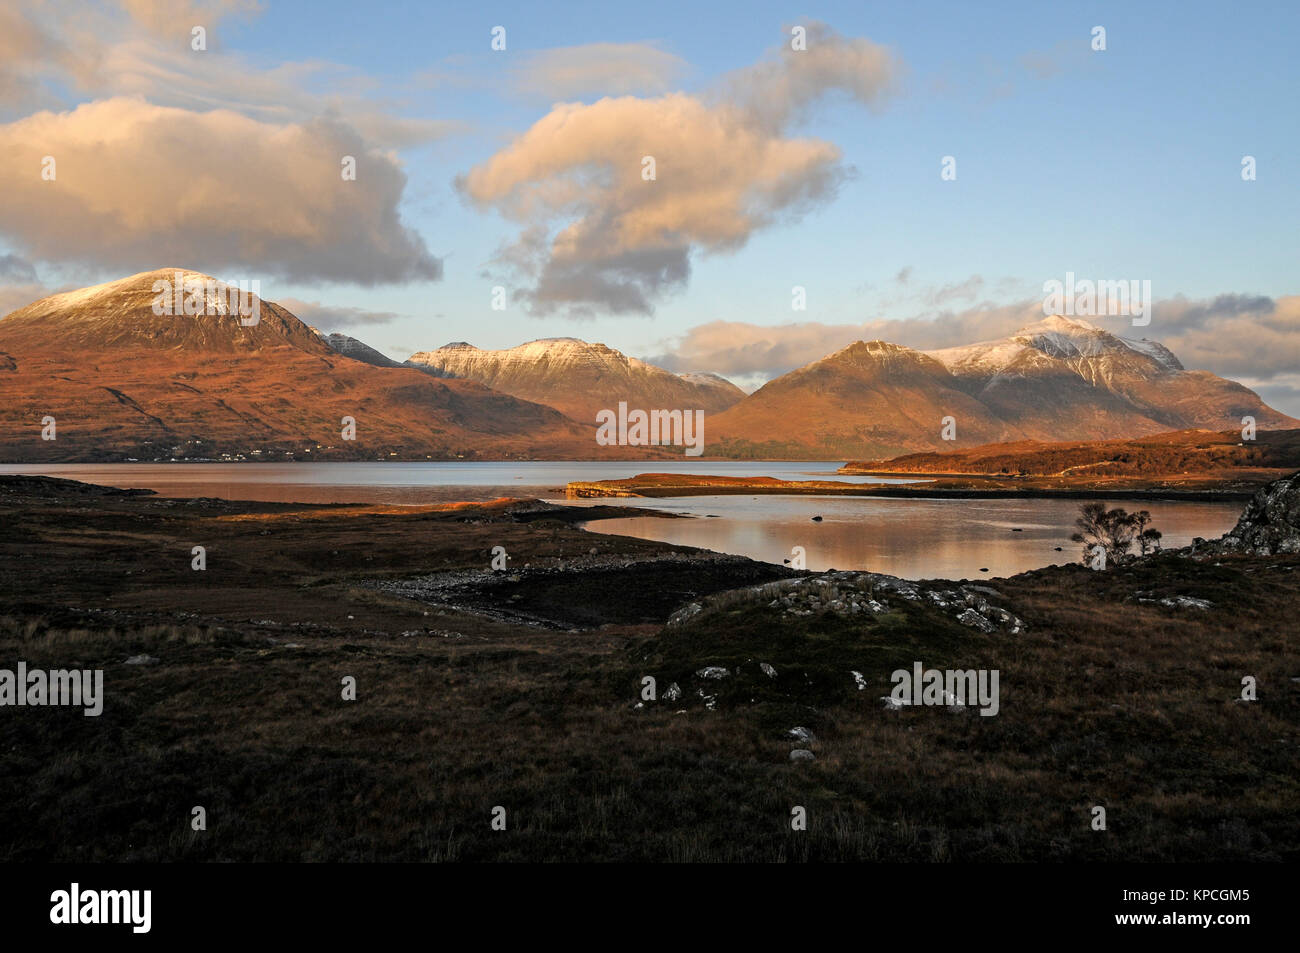 The snow-capped Torridon Mountains and Upper Loch Torridon  in Wester Ross, northwest Scotland, Britain - Stock Image